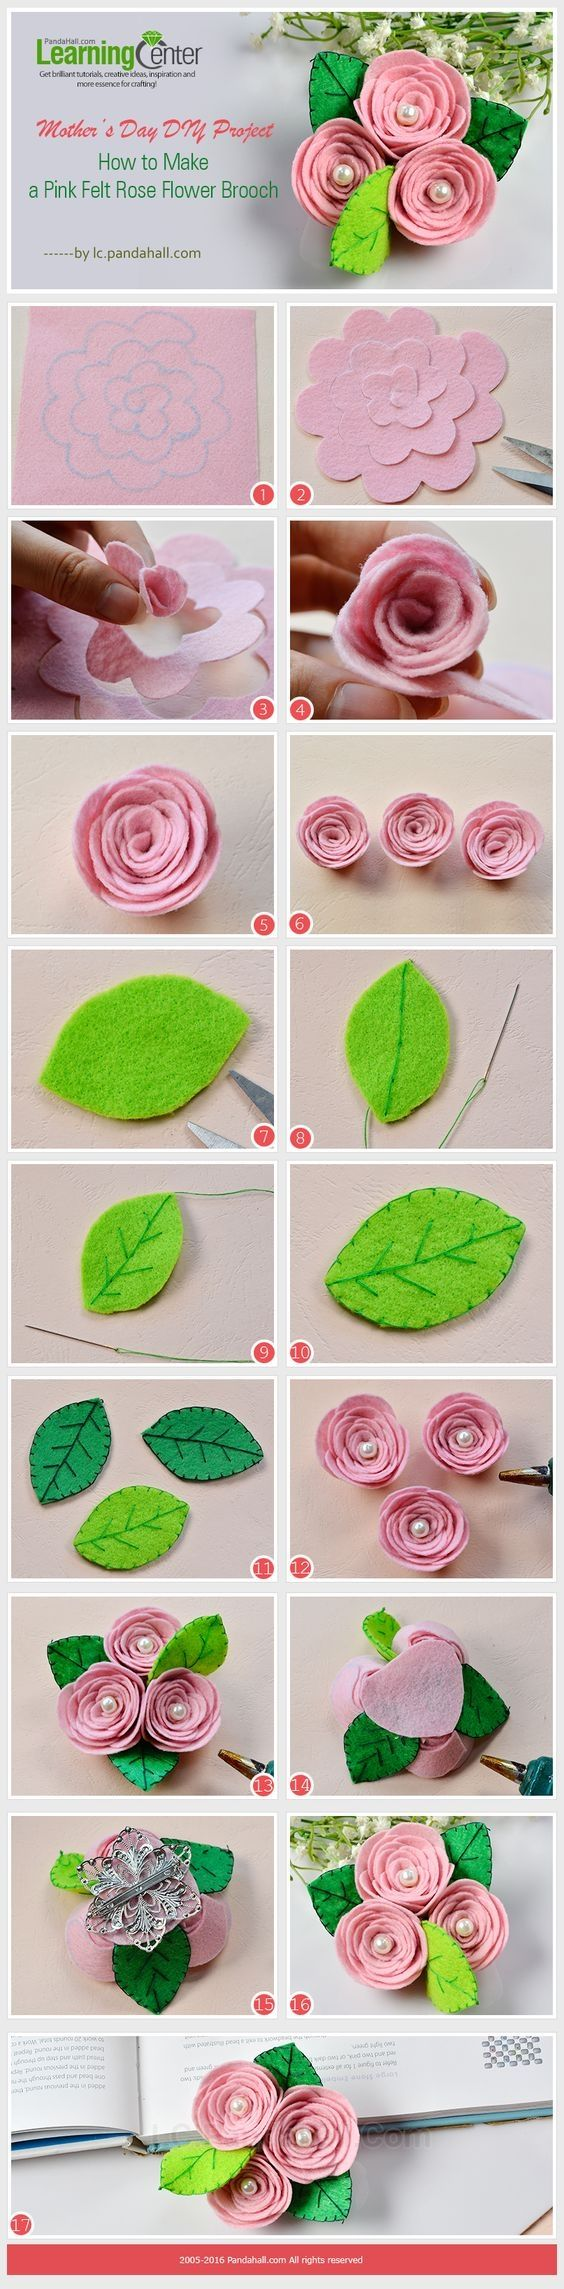 how to make a flower pin